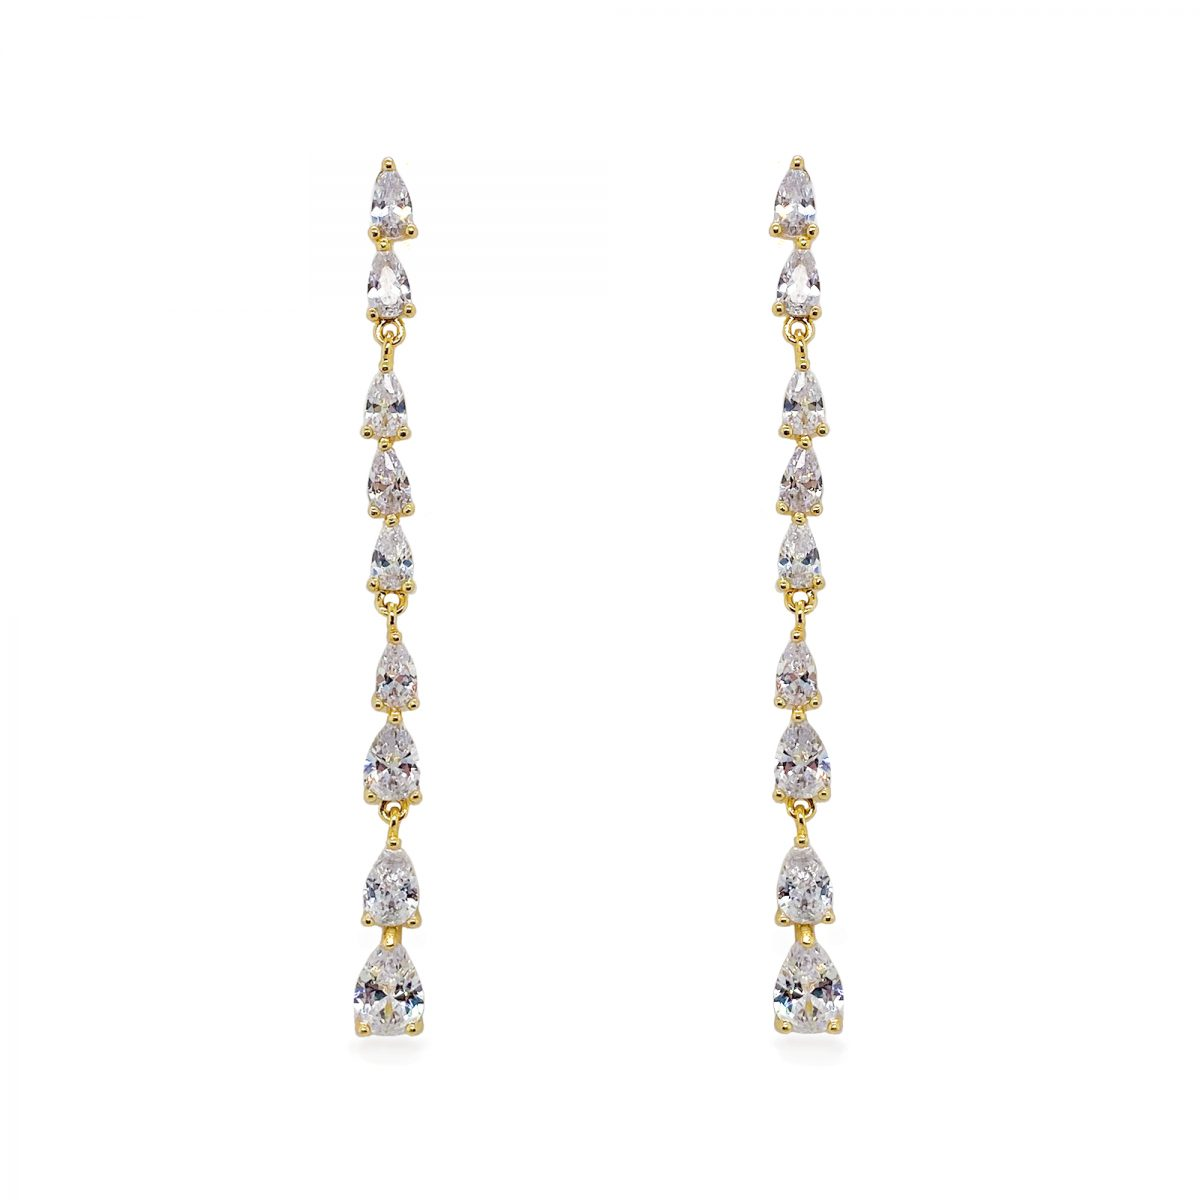 Ivory and Co Paris Gold Drop Earrings - Gold 1